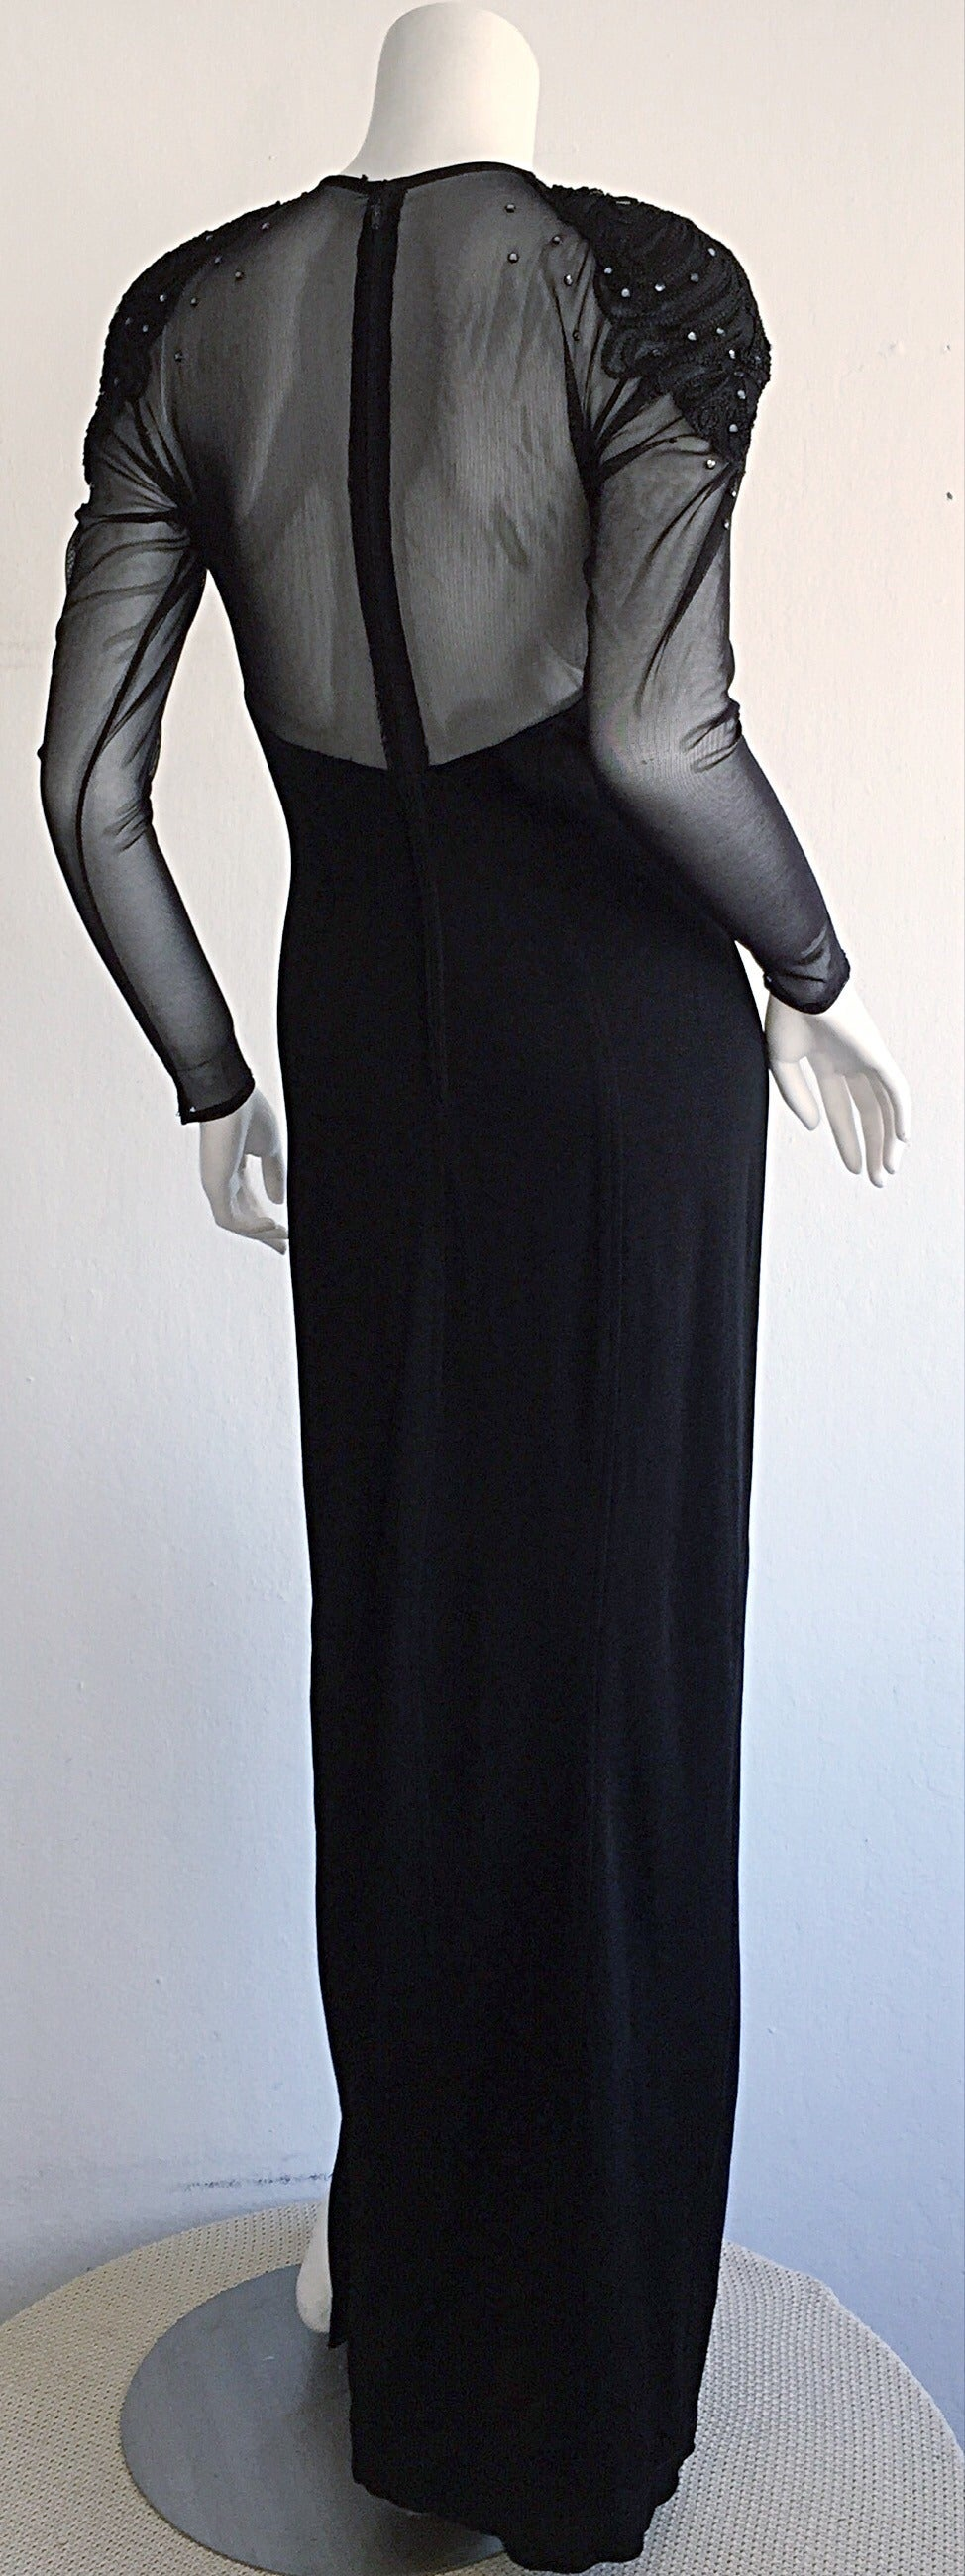 Women's Sexy Vintage 1990s Black Cut - Out Bodycon Dress w/ Rhinestones For Sale